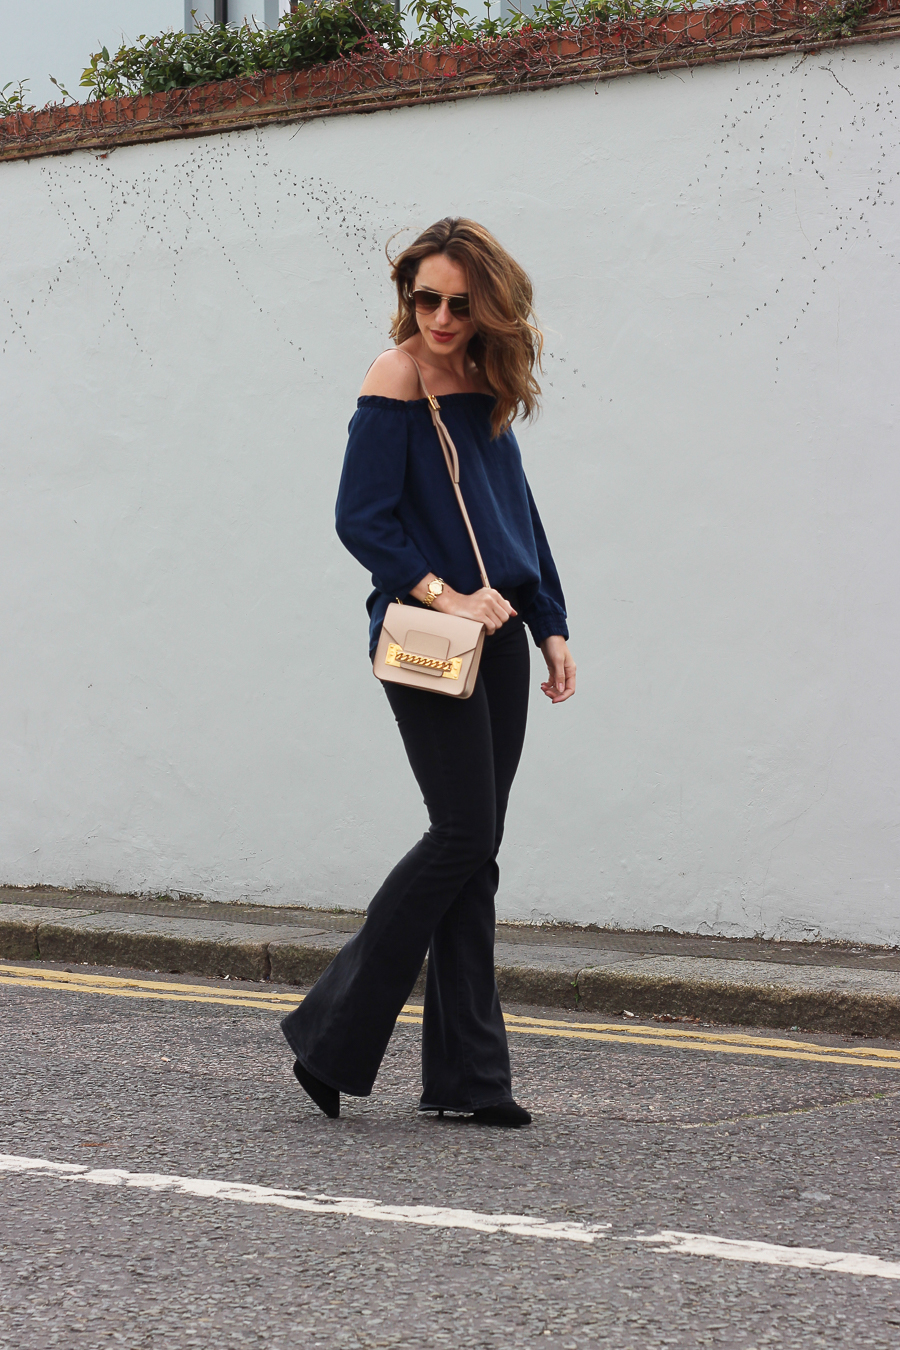 Clutch and carry on - uk fashion blogger - uk travel blogger - sabrina chakici - mango off shoulder top, london street style, sophie hulme oat-24